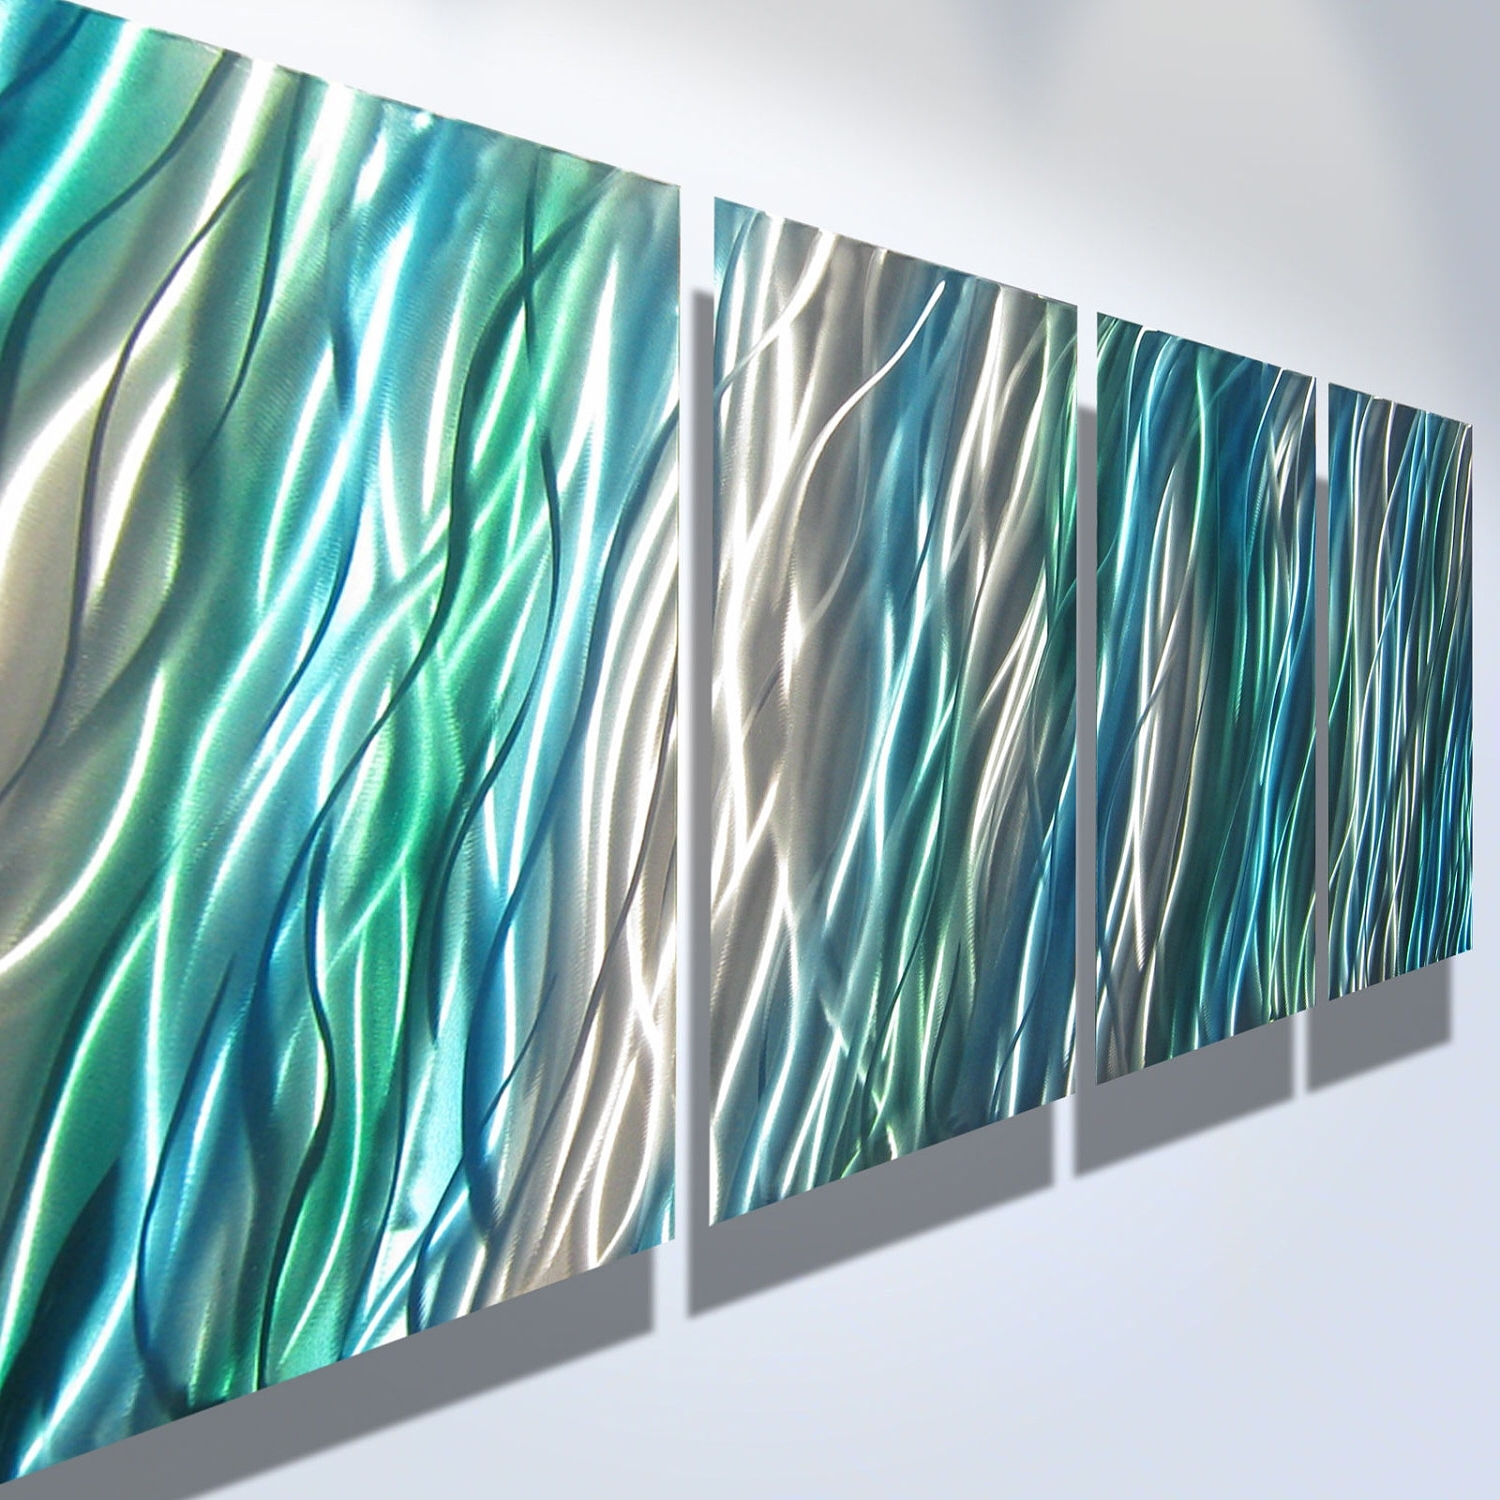 Most Current Inexpensive Abstract Metal Wall Art In Metal Wall Art Decor Abstract Contemporary Modern Sculpture (View 2 of 15)